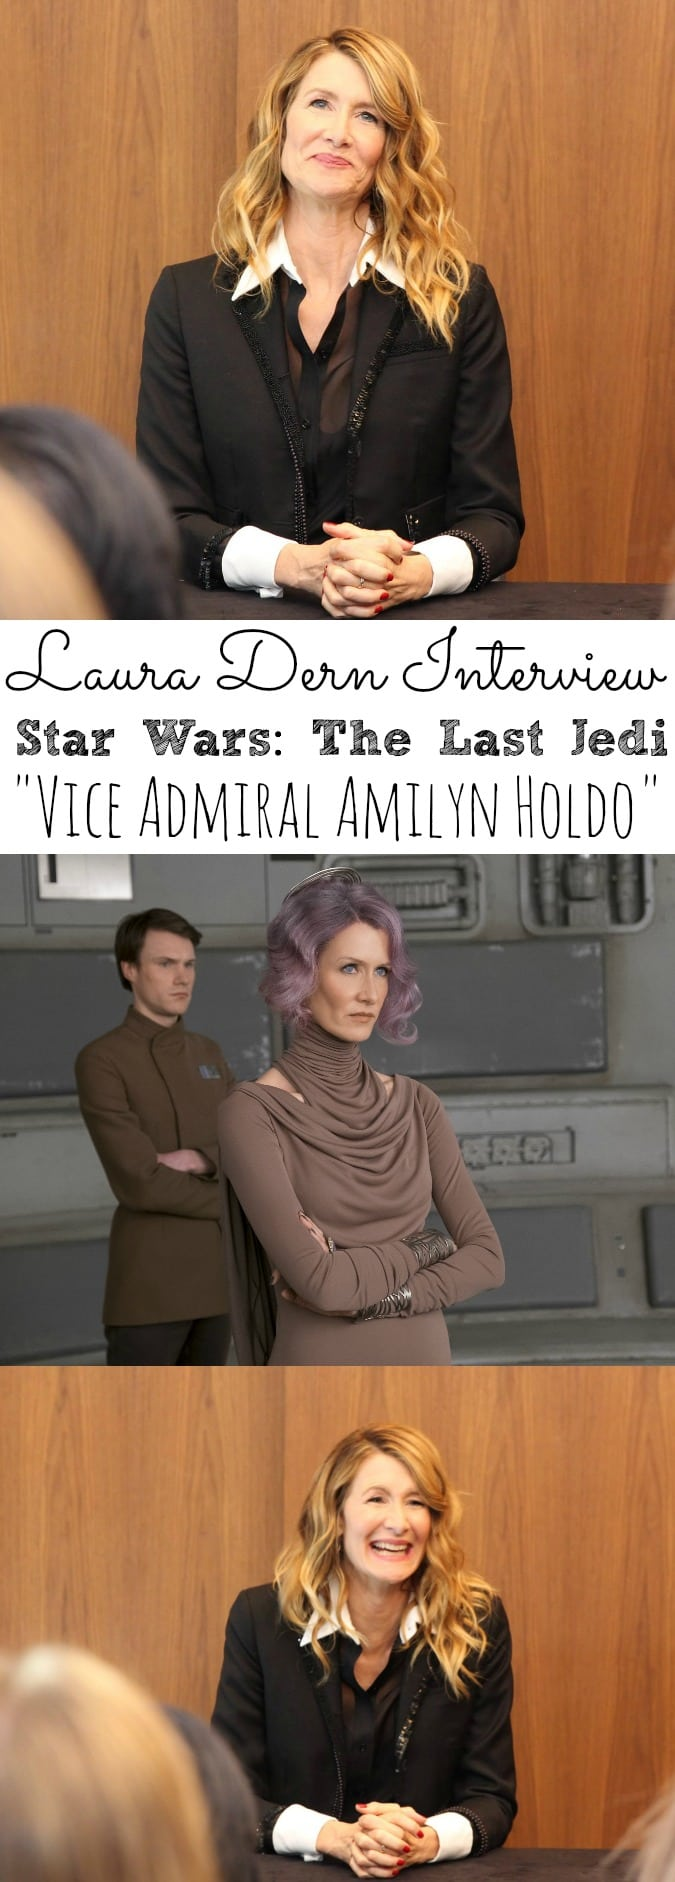 Interview With Laura Dern About Star Wars: The Last Jedi #TheLastJediEvent - simplytodaylife.com